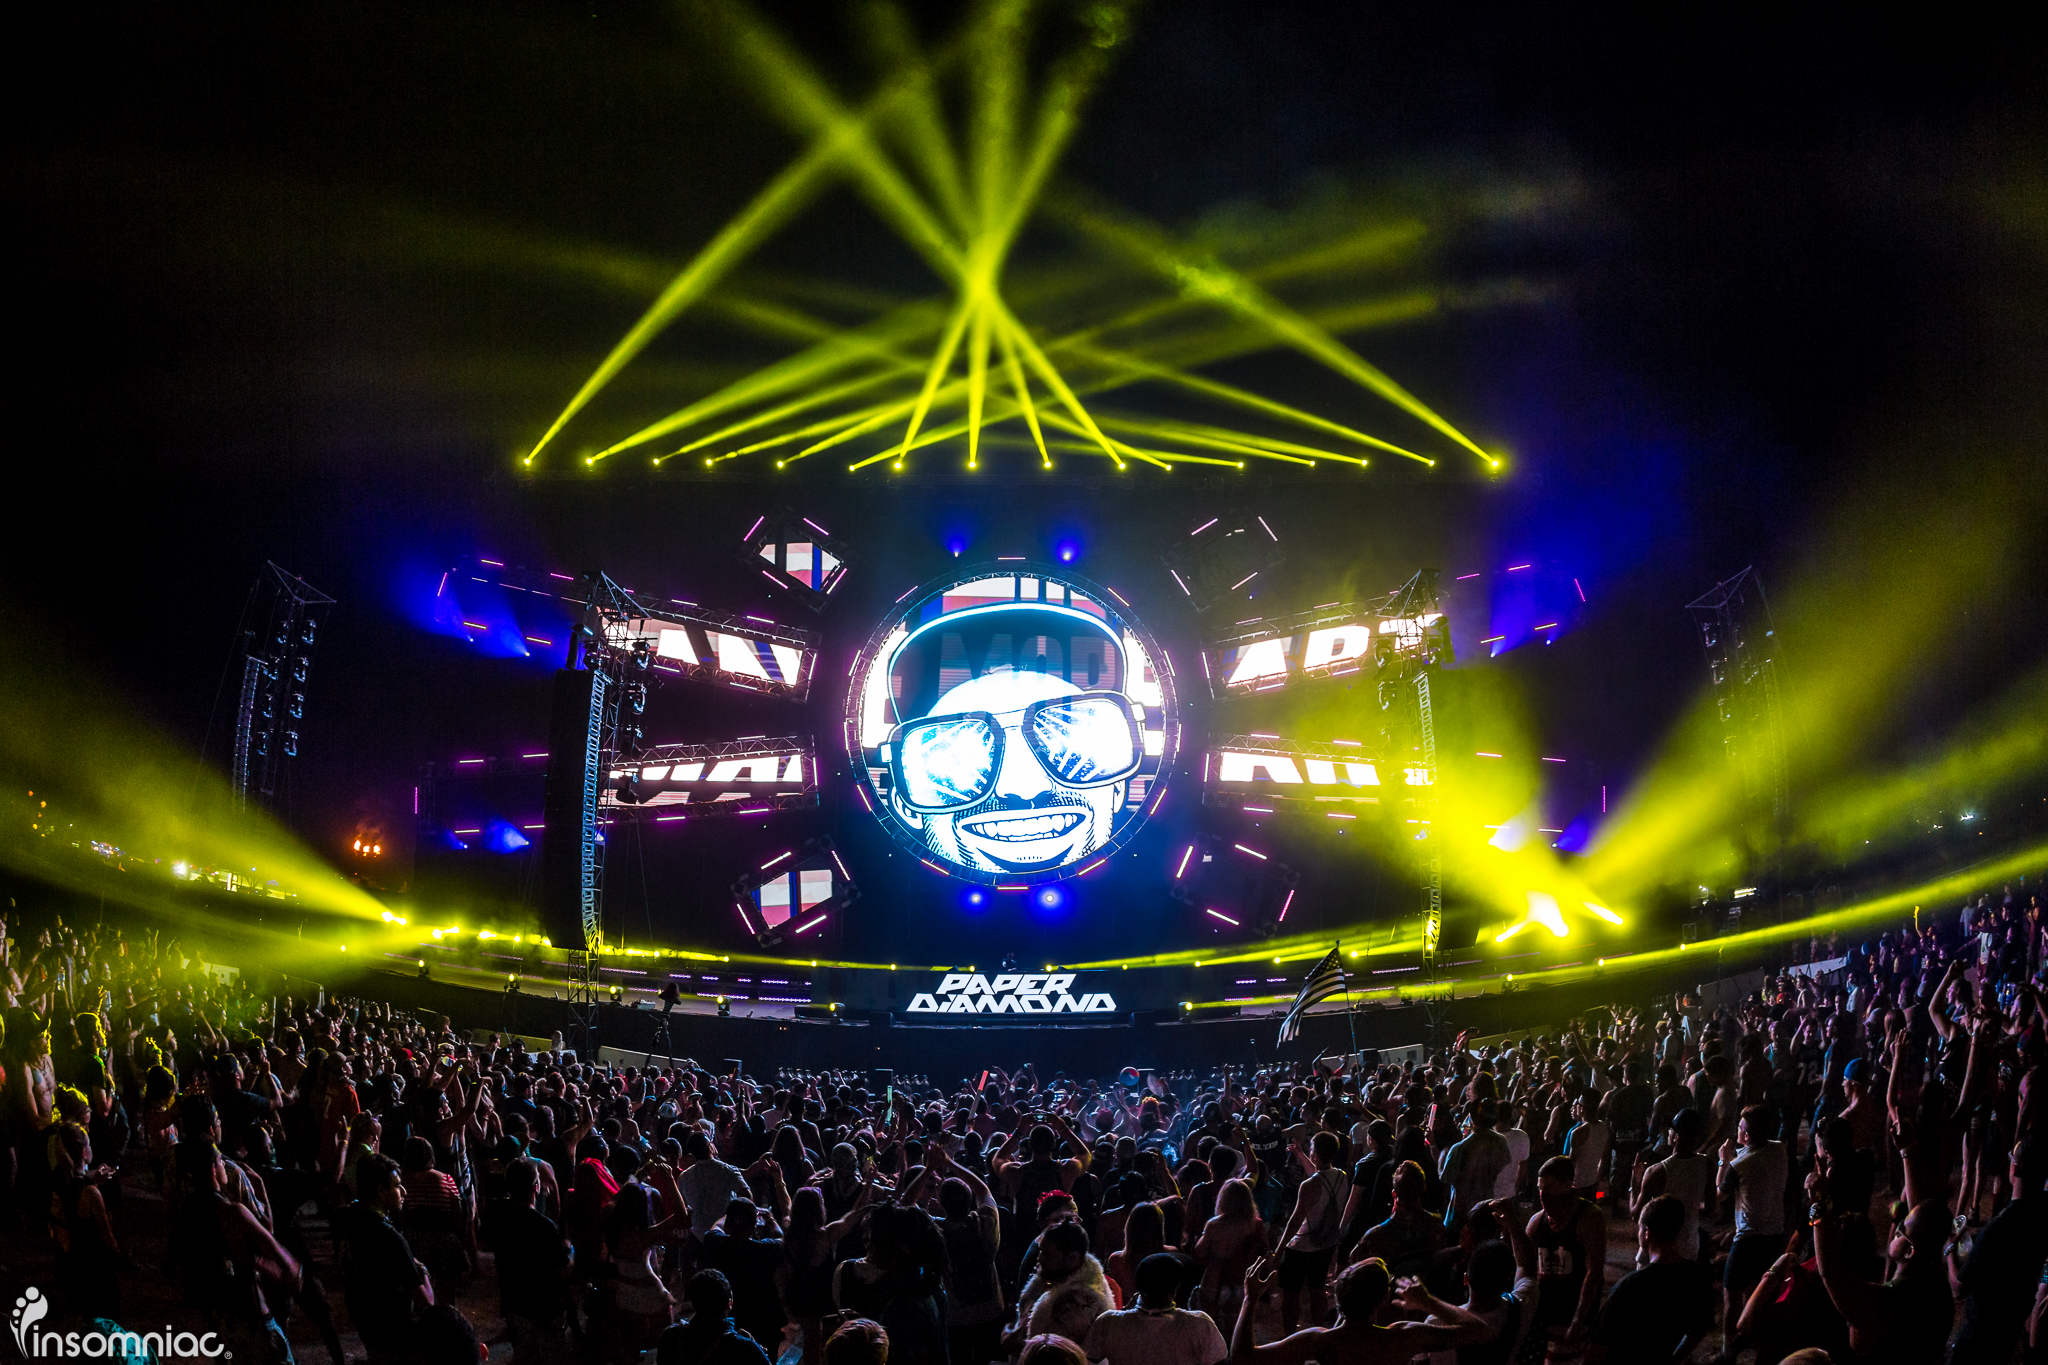 nocturnal_2015_iwally_alivecoverage-30.jpg